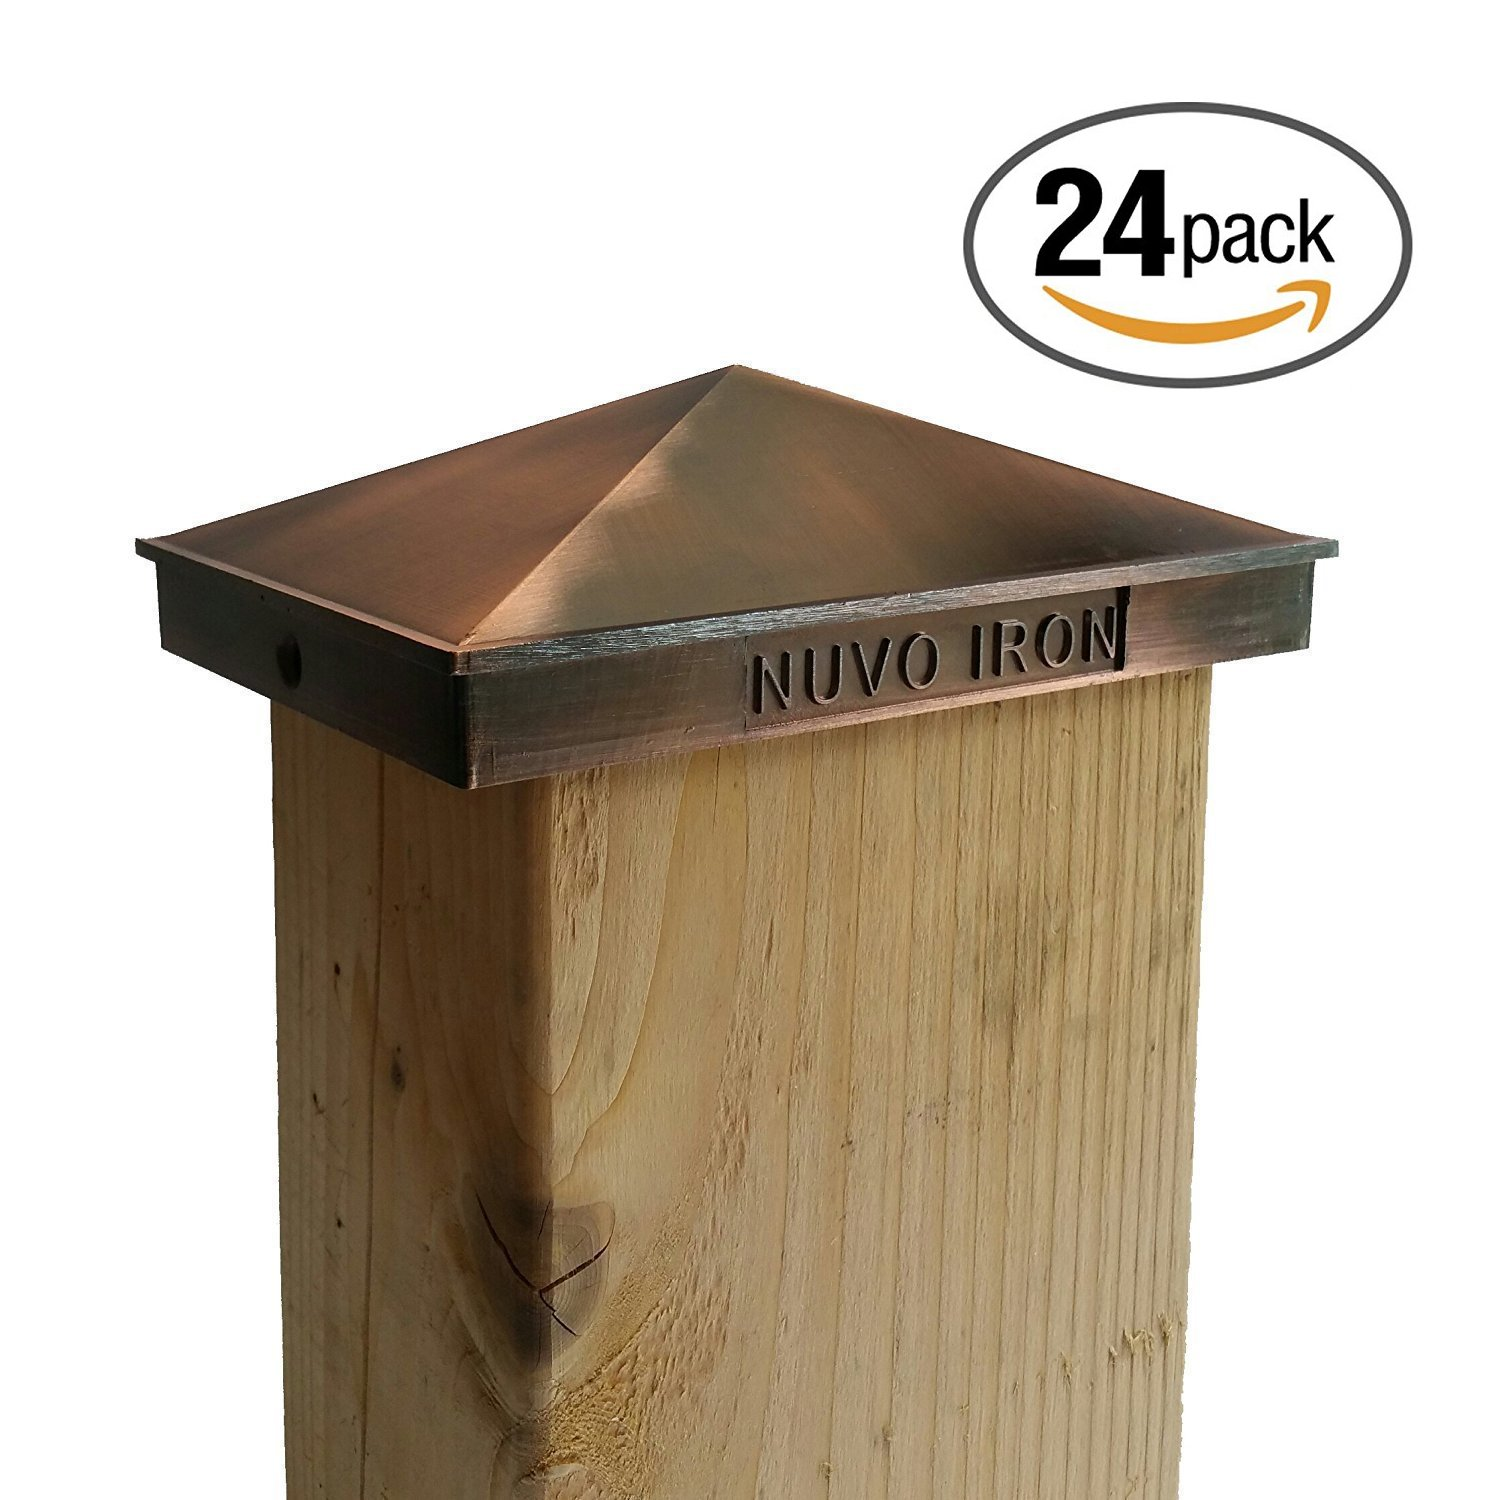 Nuvo Iron Decorative Pyramid Aluminium Post Cap for 3.5'' x 5.5'' / 4'' x 6'' Posts - Copper Plated [24 PACK]